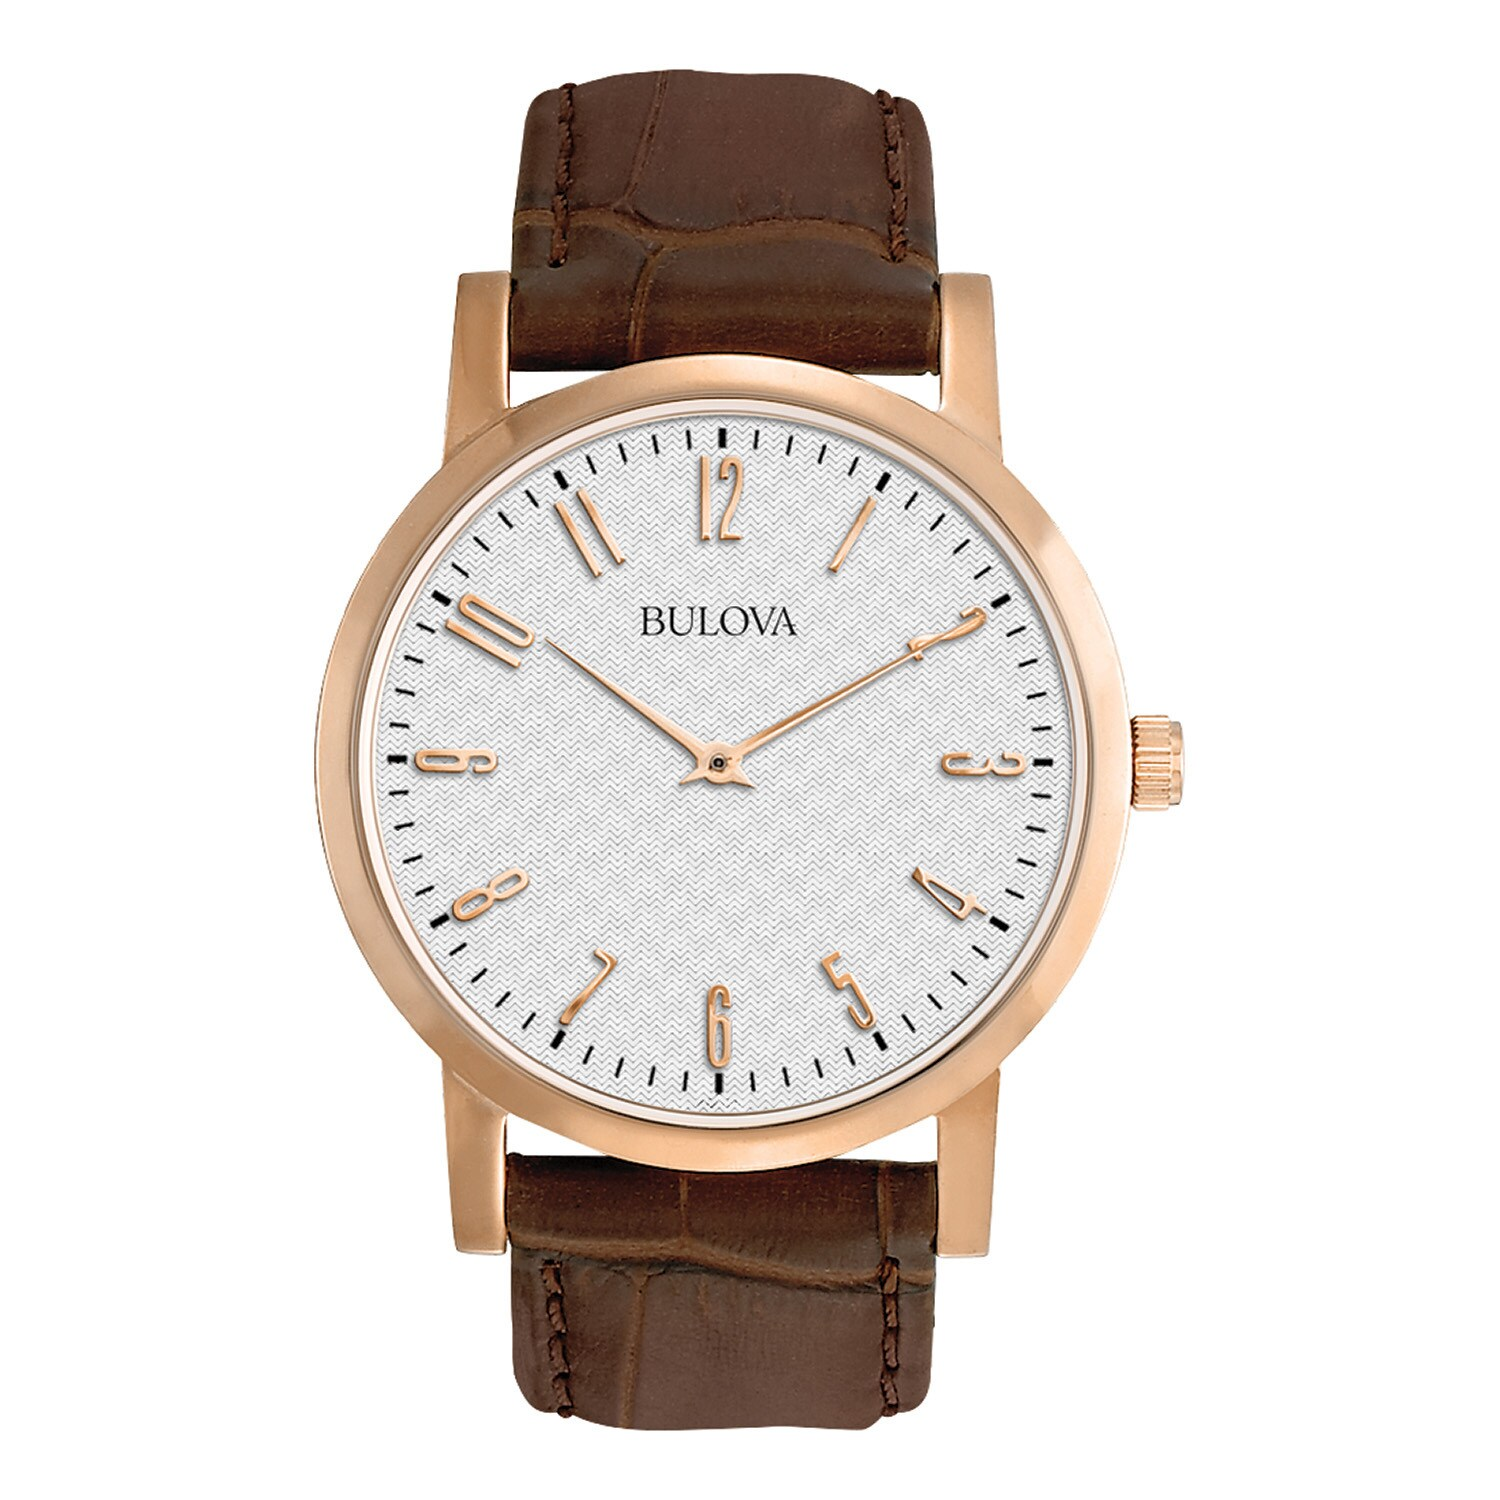 BULOVA Men's 97A106 Brown Leather and Stainless Steel Wat...